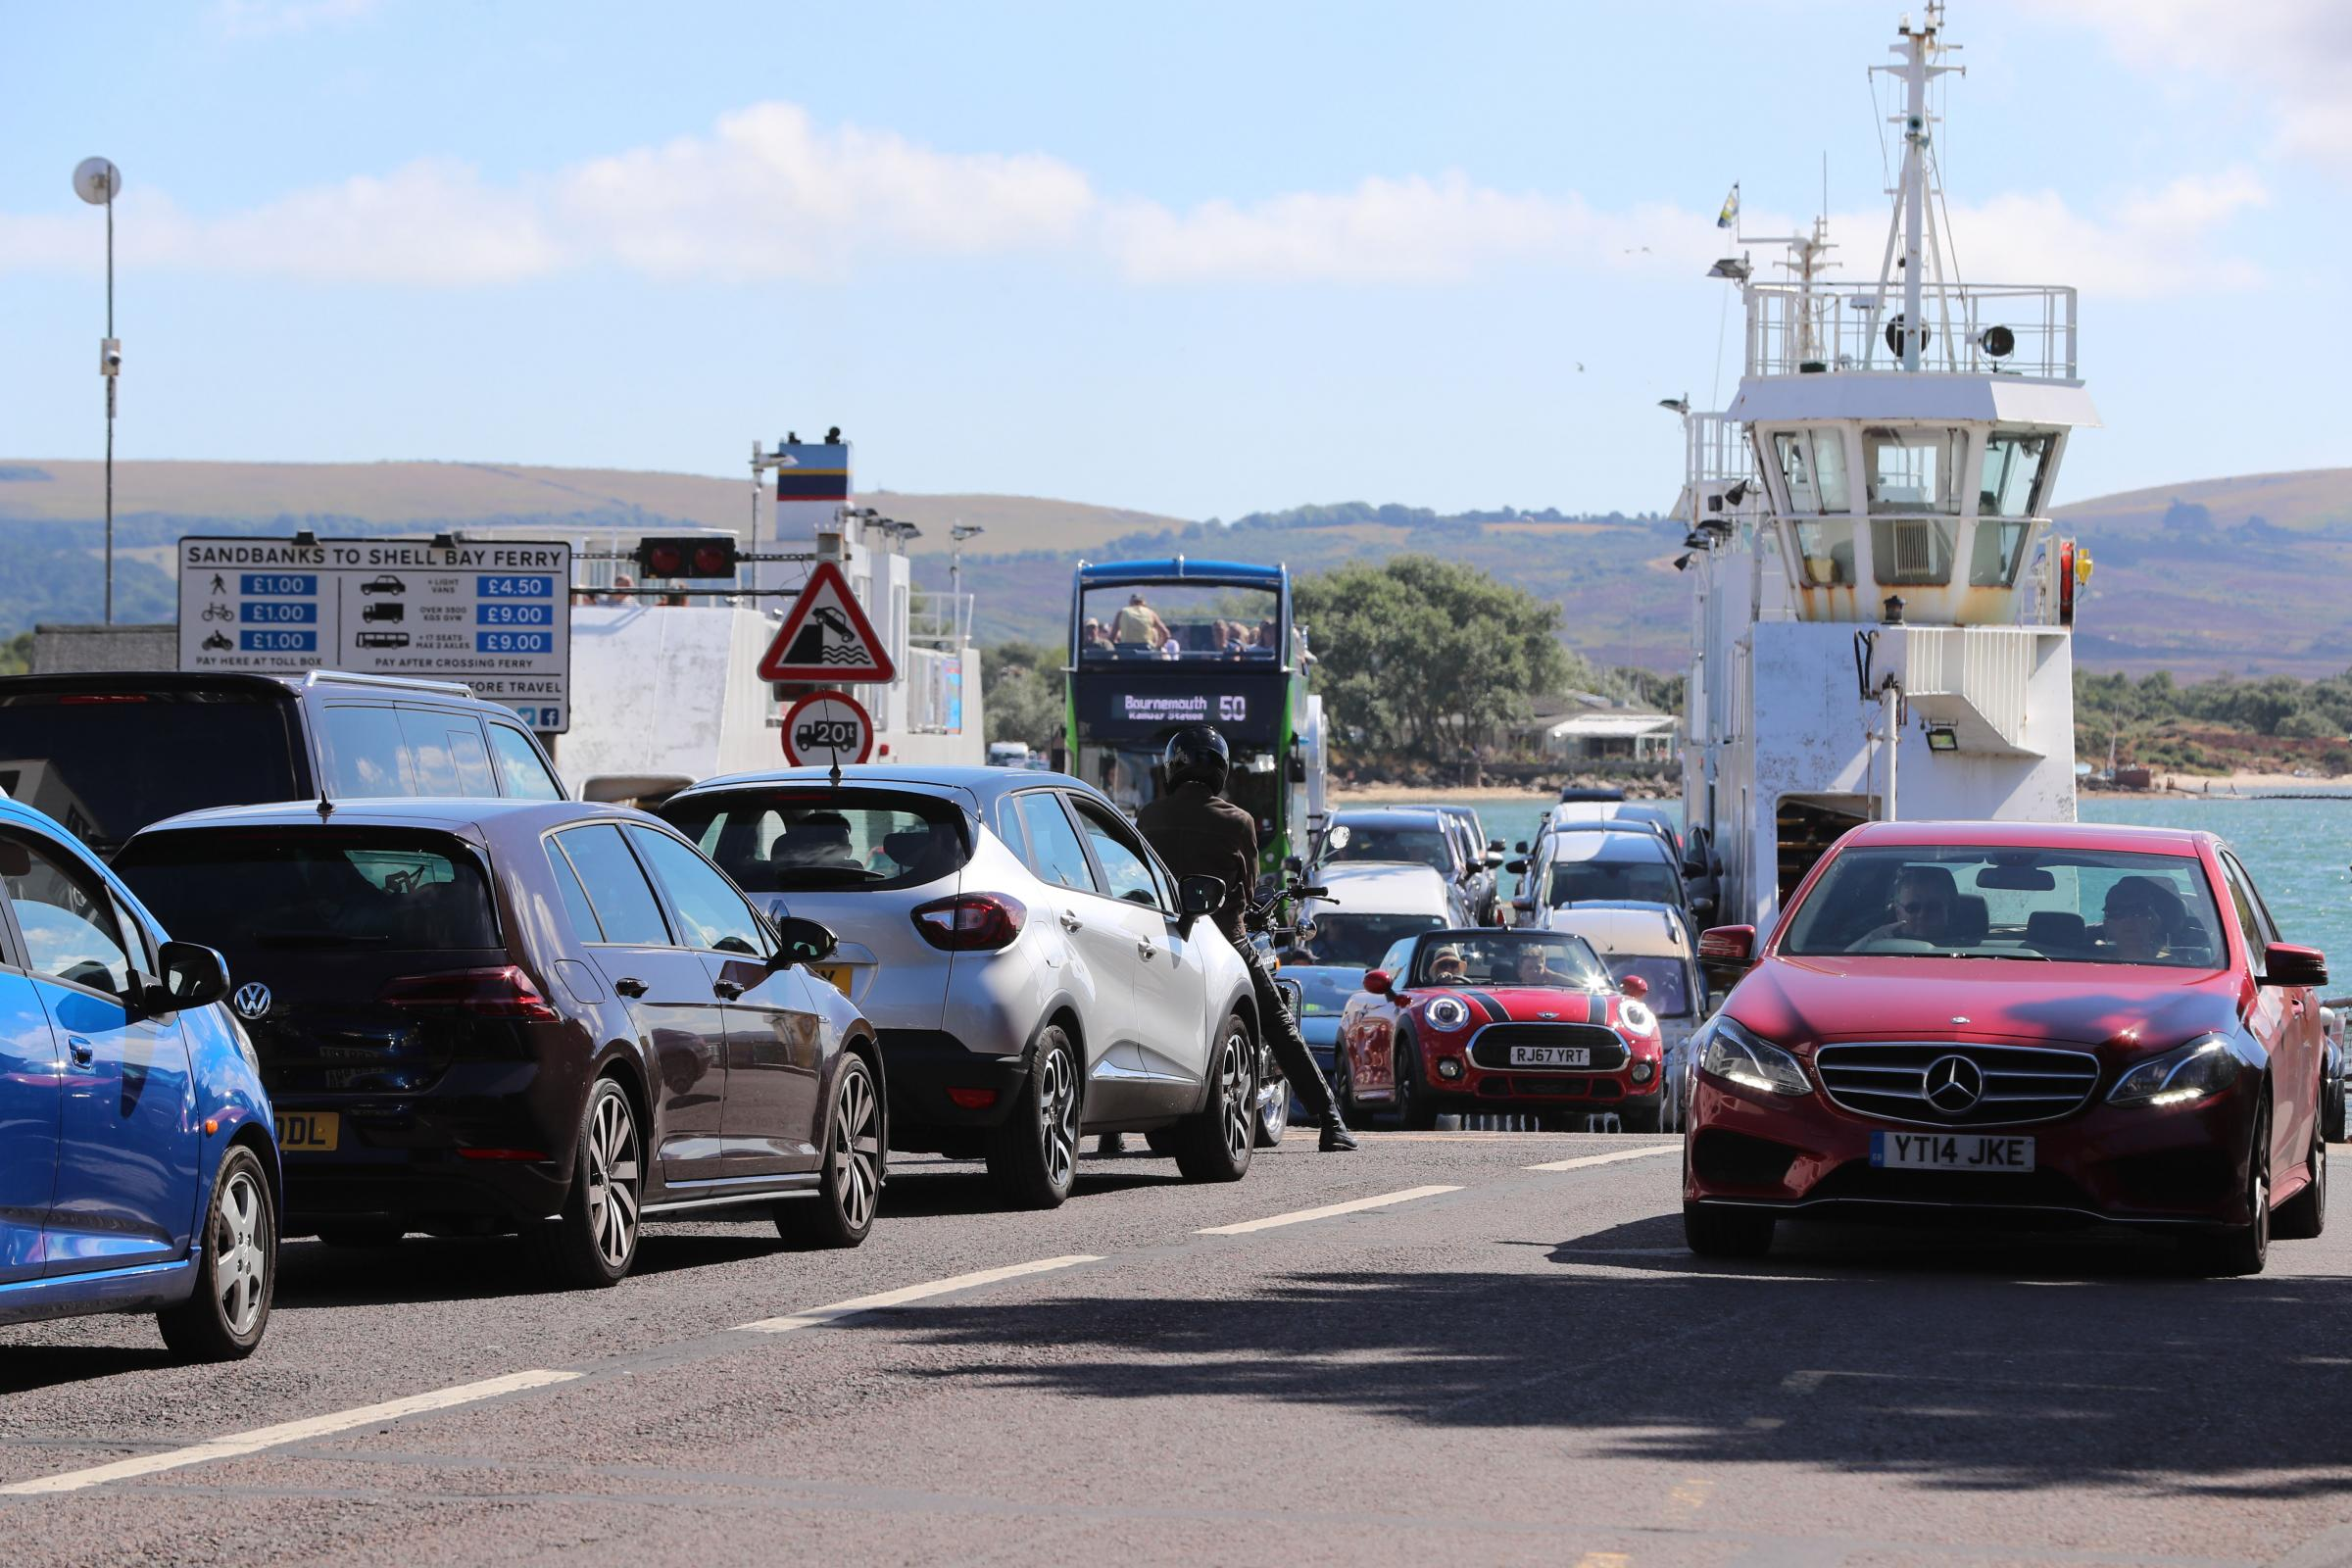 Traffic waiting to cross on the Sandbanks to Studland Ferry.